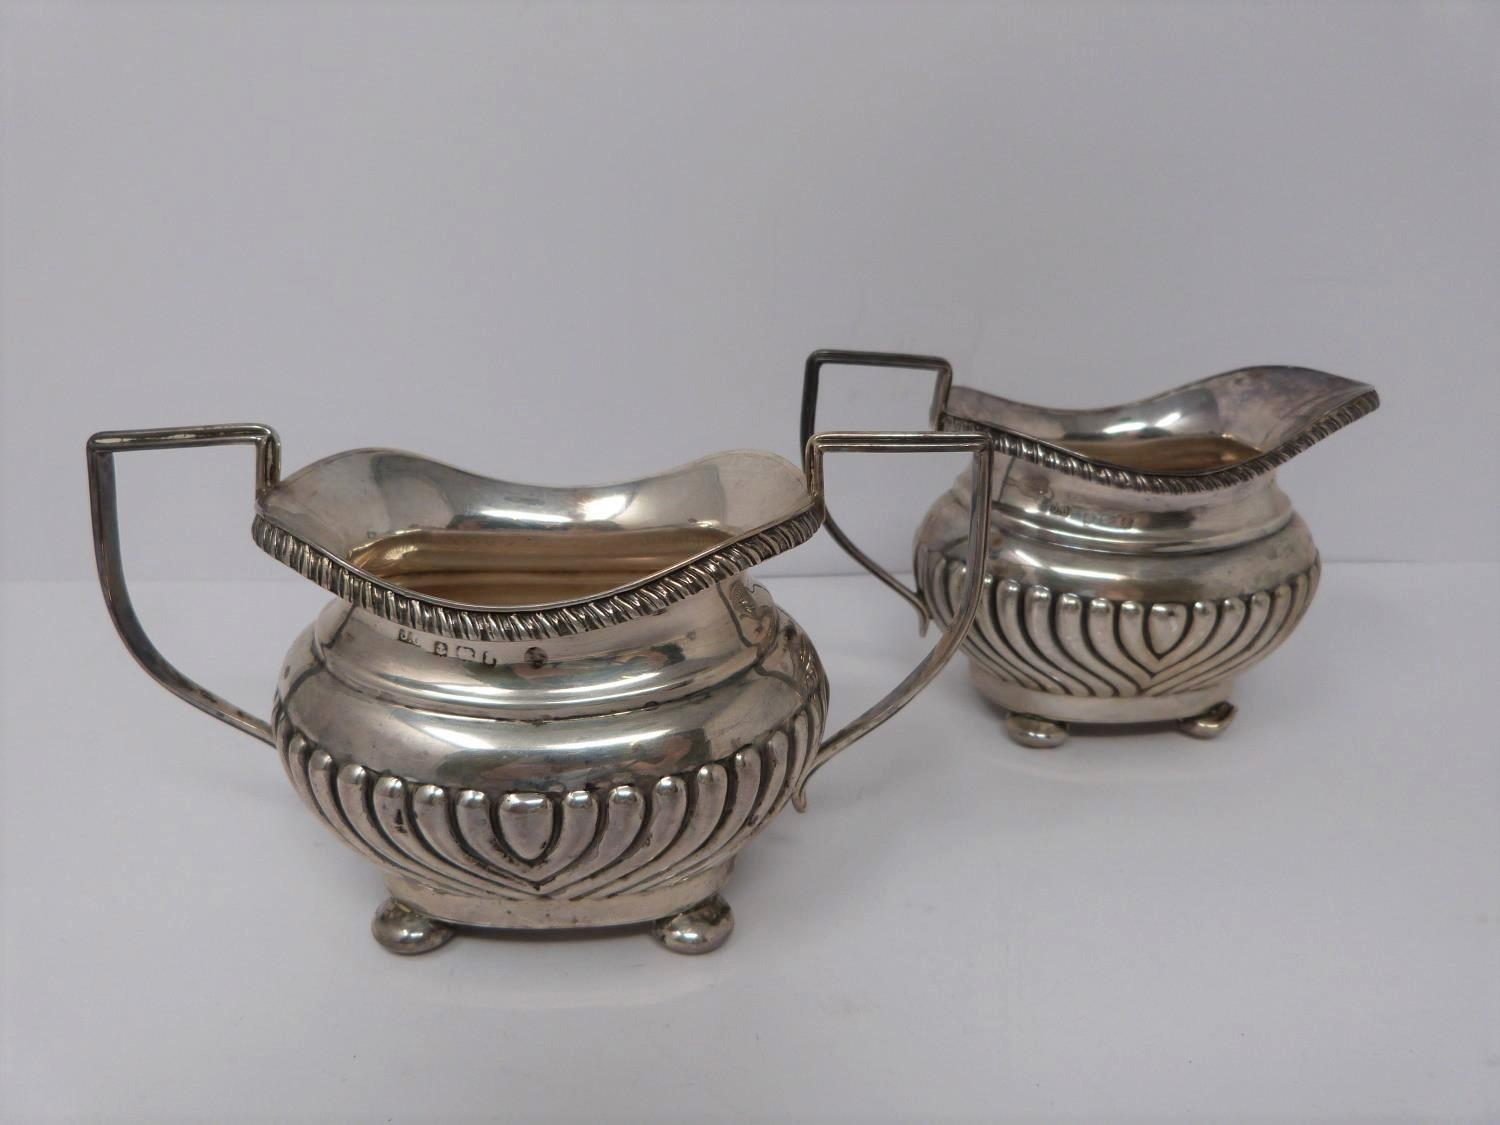 Two silver jugs, sugar and repousse work bowl. Bowl on three lions feet, 1857, London, Henry - Image 2 of 9